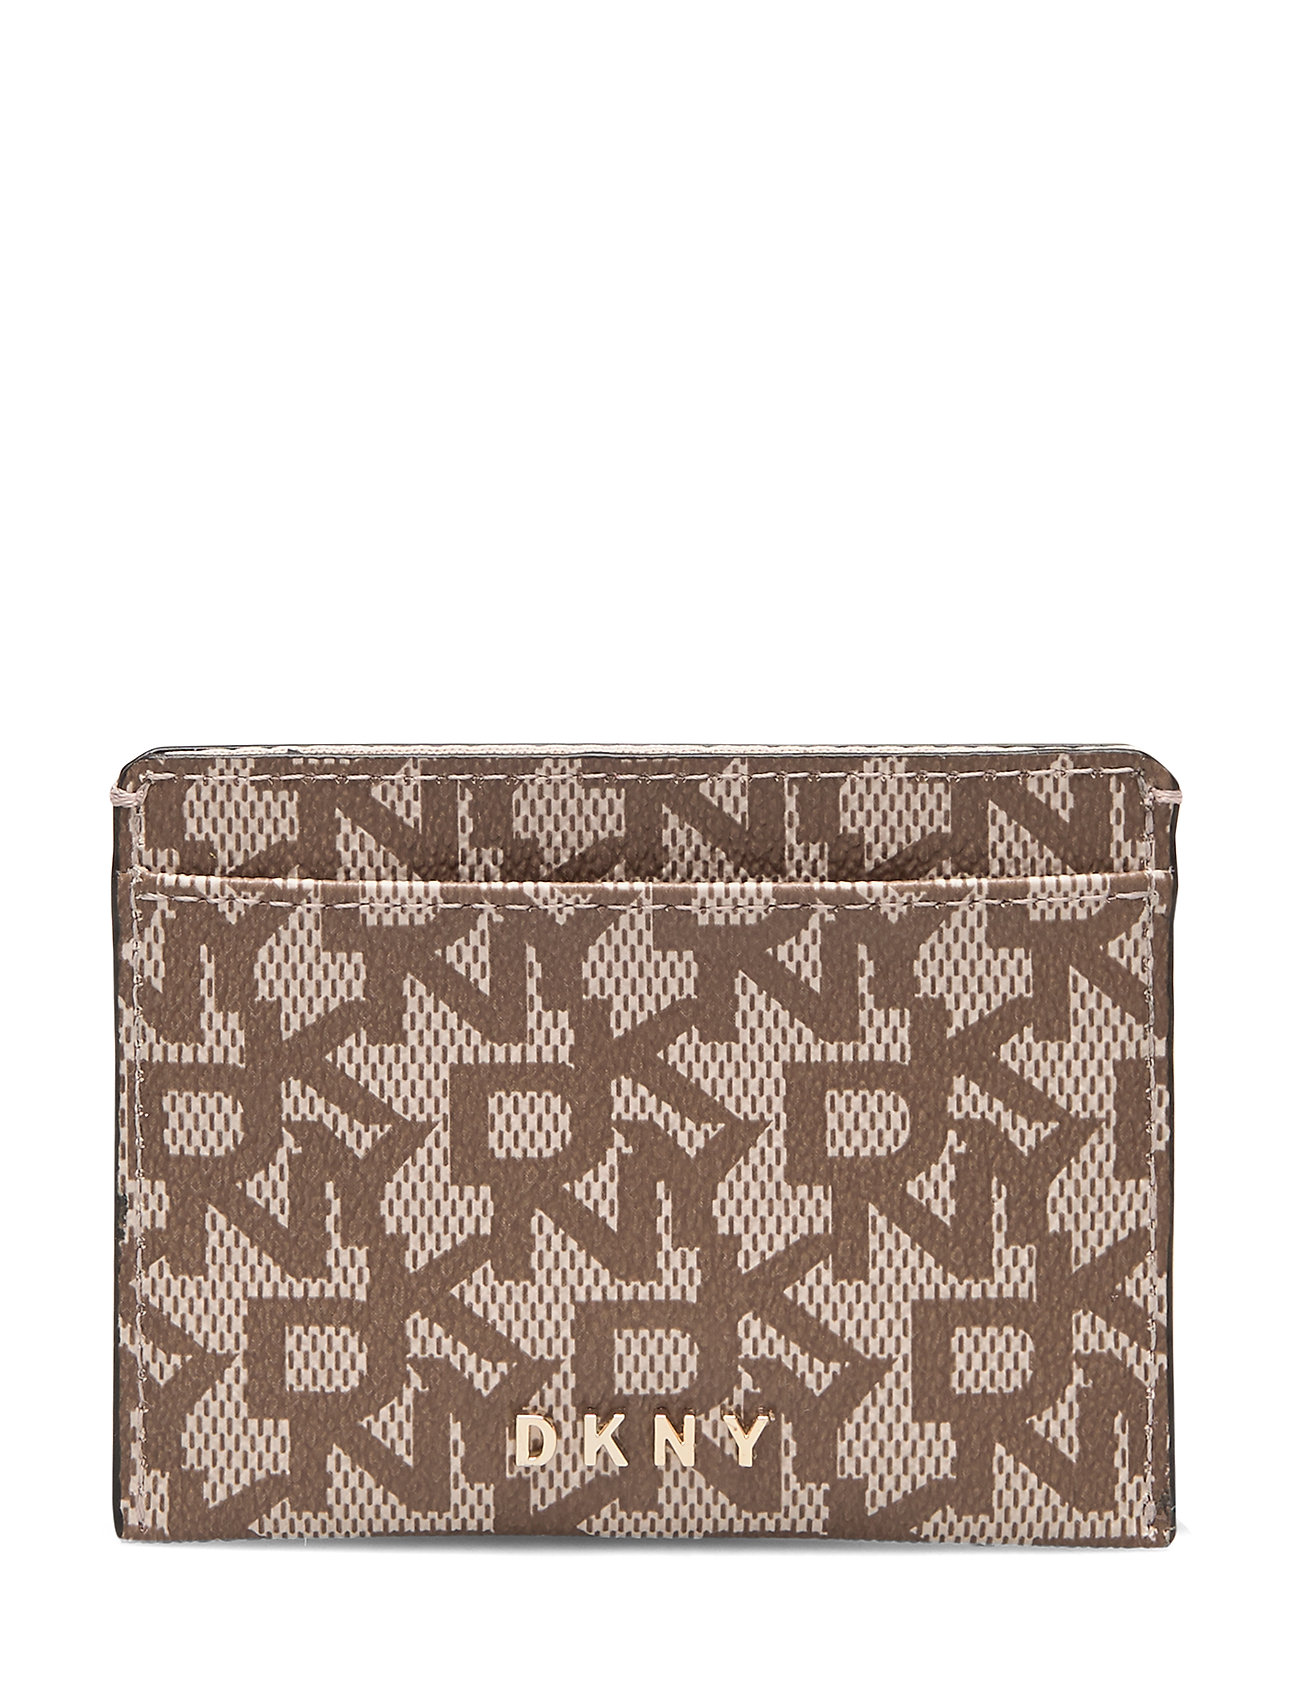 Image of Bryant-Card Holder-L Bags Card Holders & Wallets Card Holder Brun DKNY Bags (3305996415)